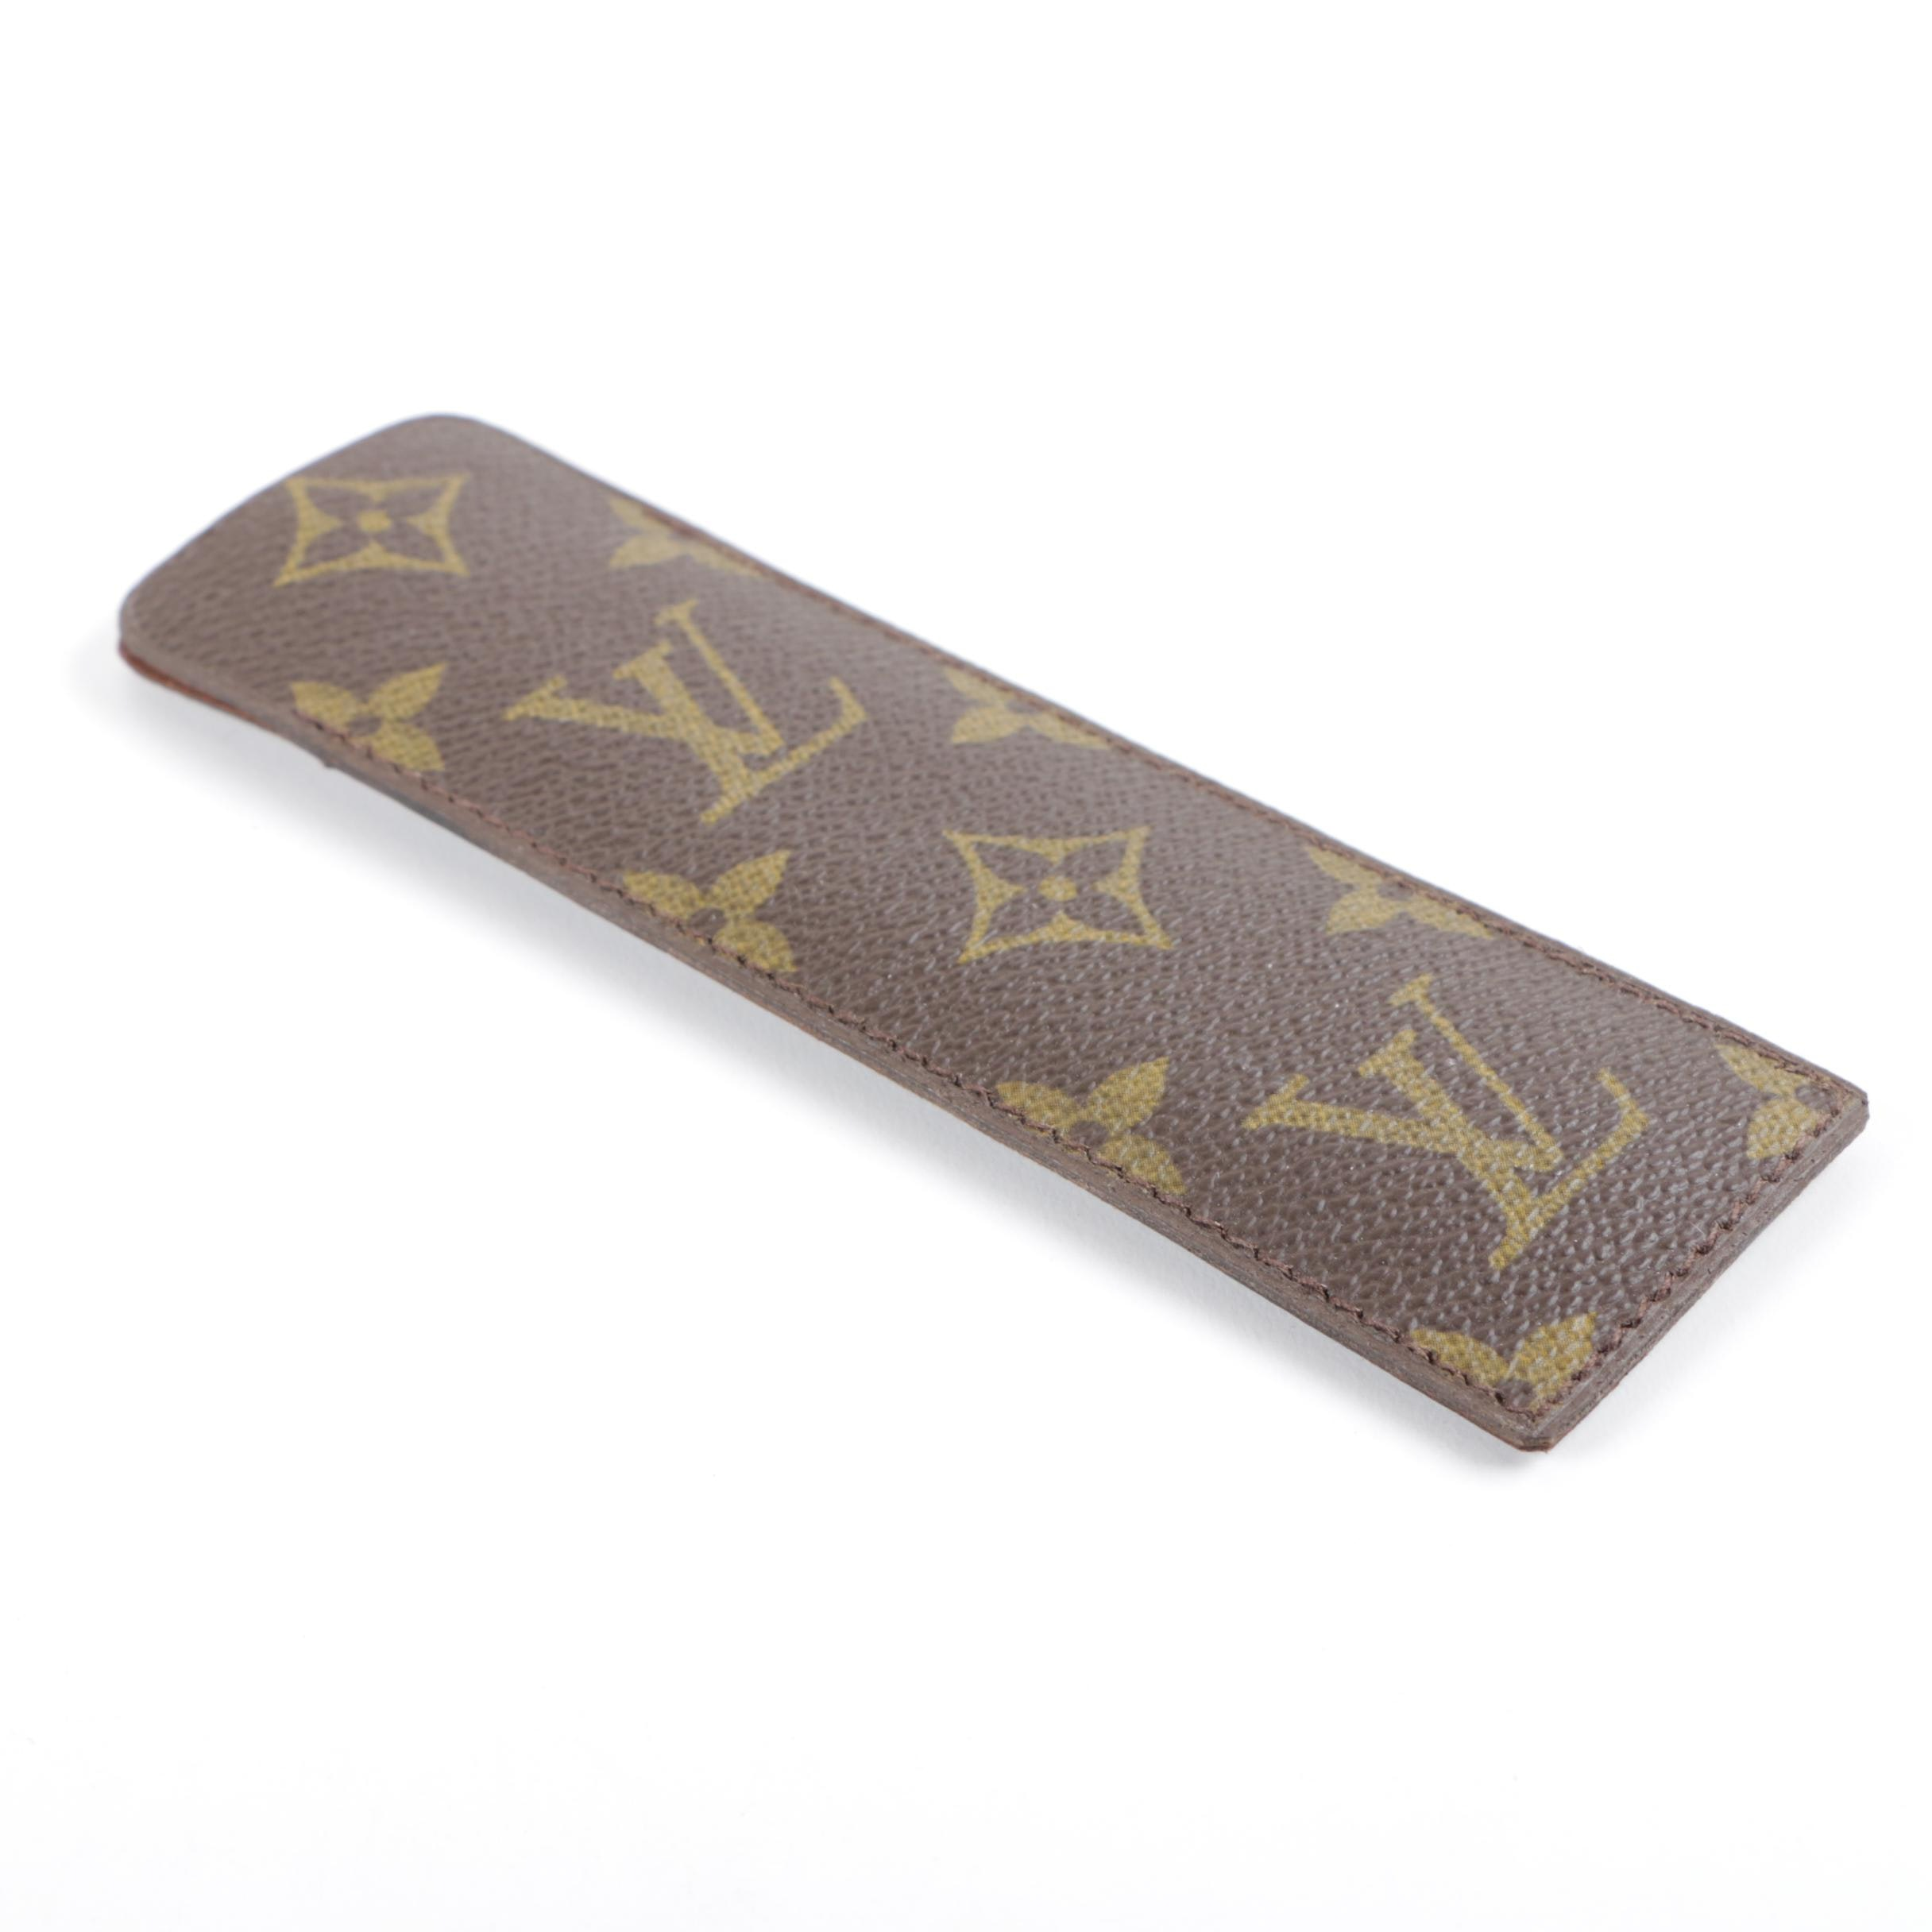 Vintage Louis Vuitton Eyeglass Case